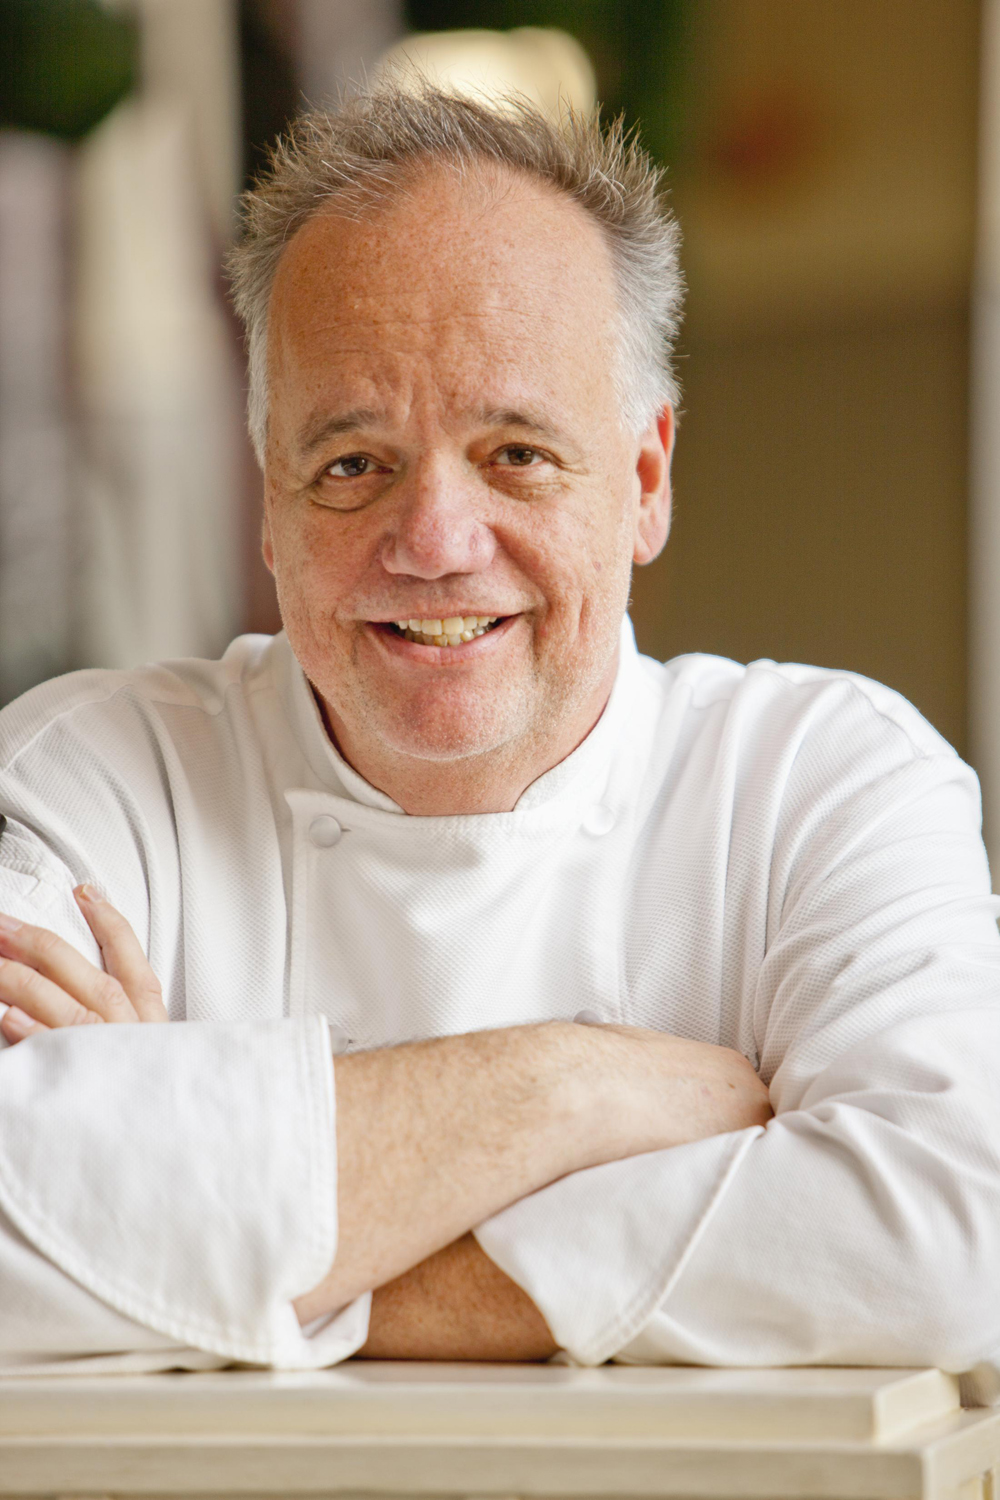 Chef Tony Mantuano